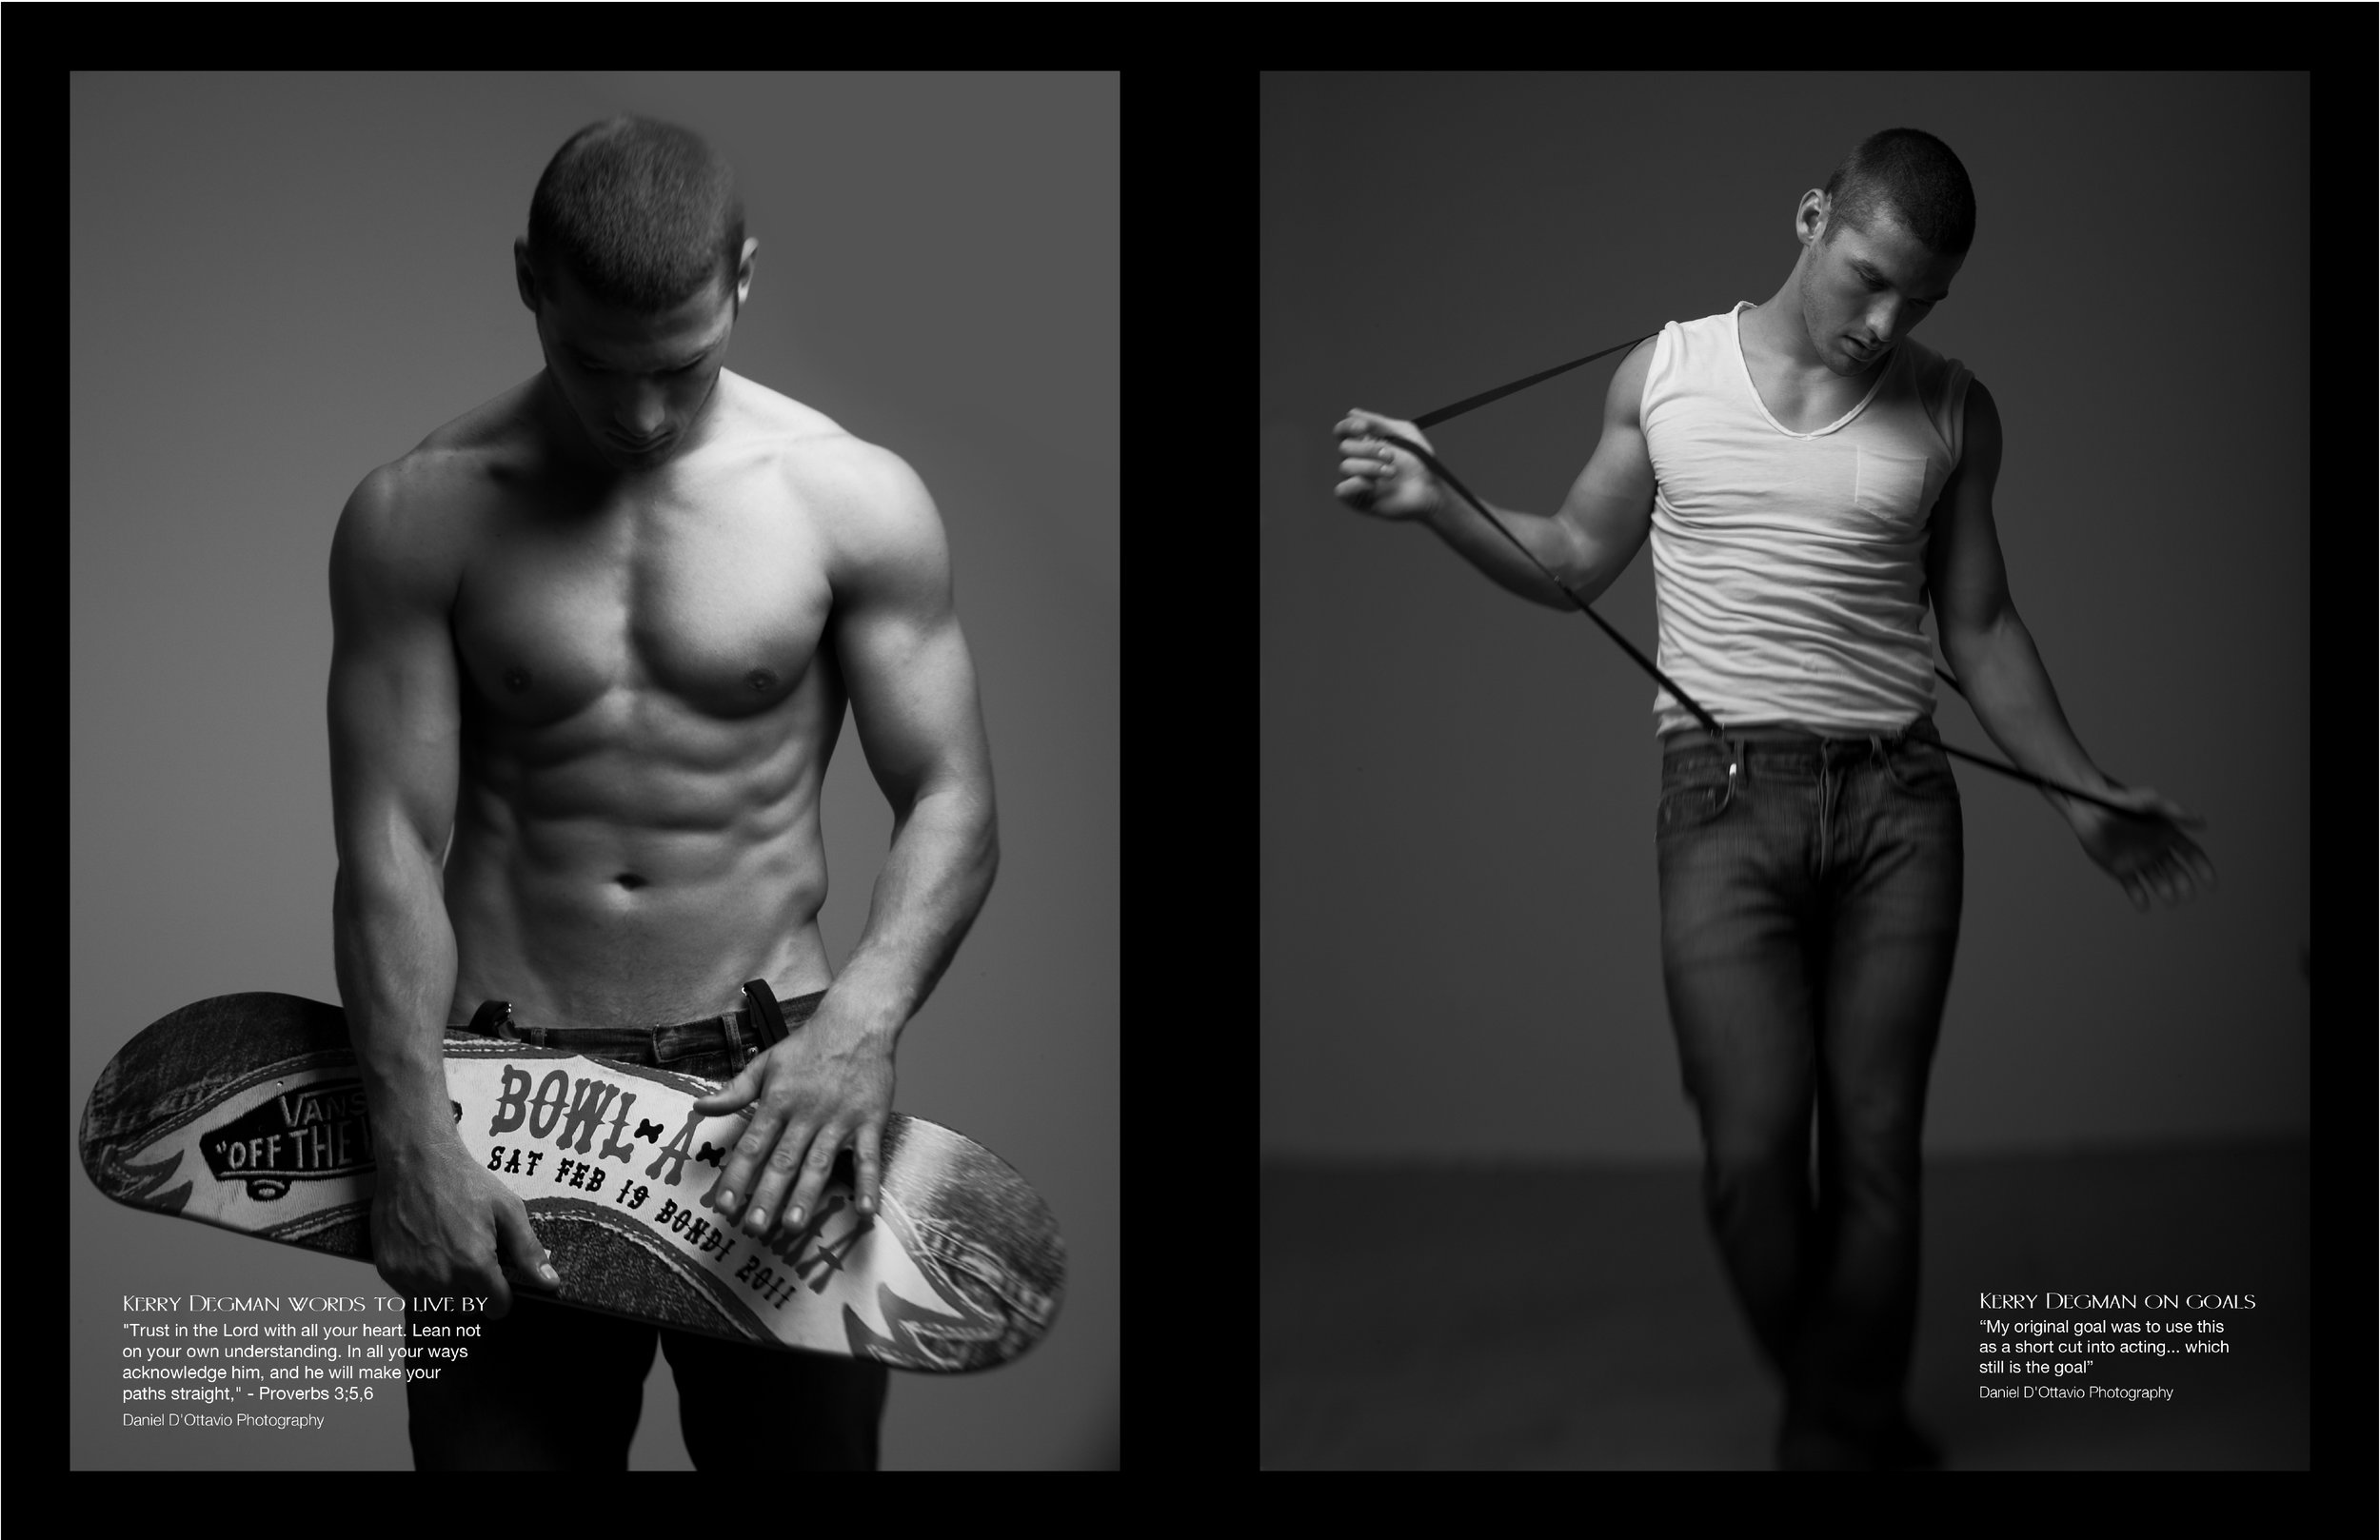 Kerry Degman Spread4.jpg